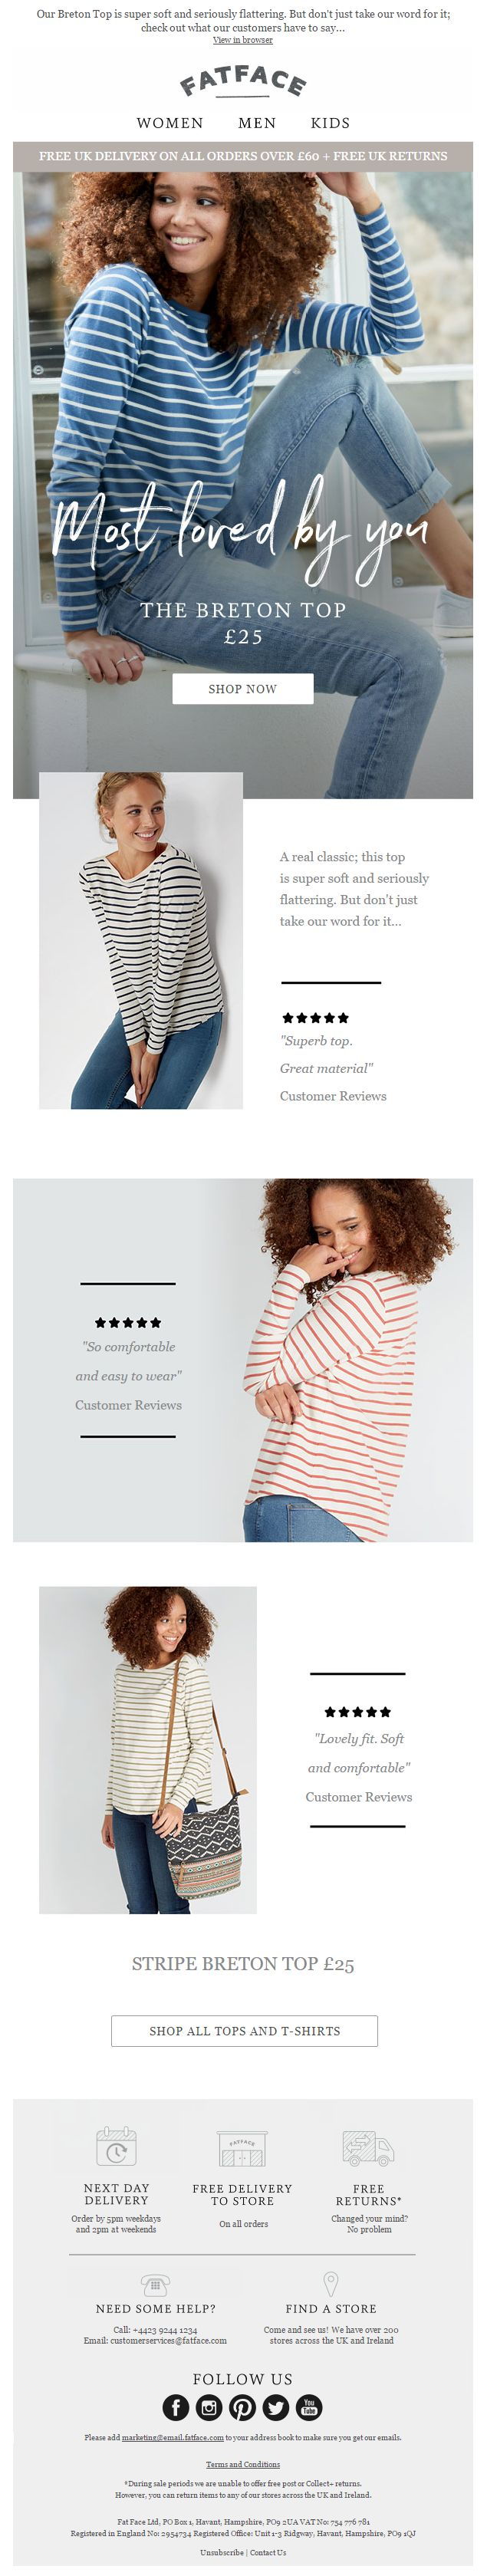 Social Proof email from Fatface with customer reviews #EmailMarketing #Email #Marketing #SocialProof #Social #Proof #Customer #Reviews #Fashion